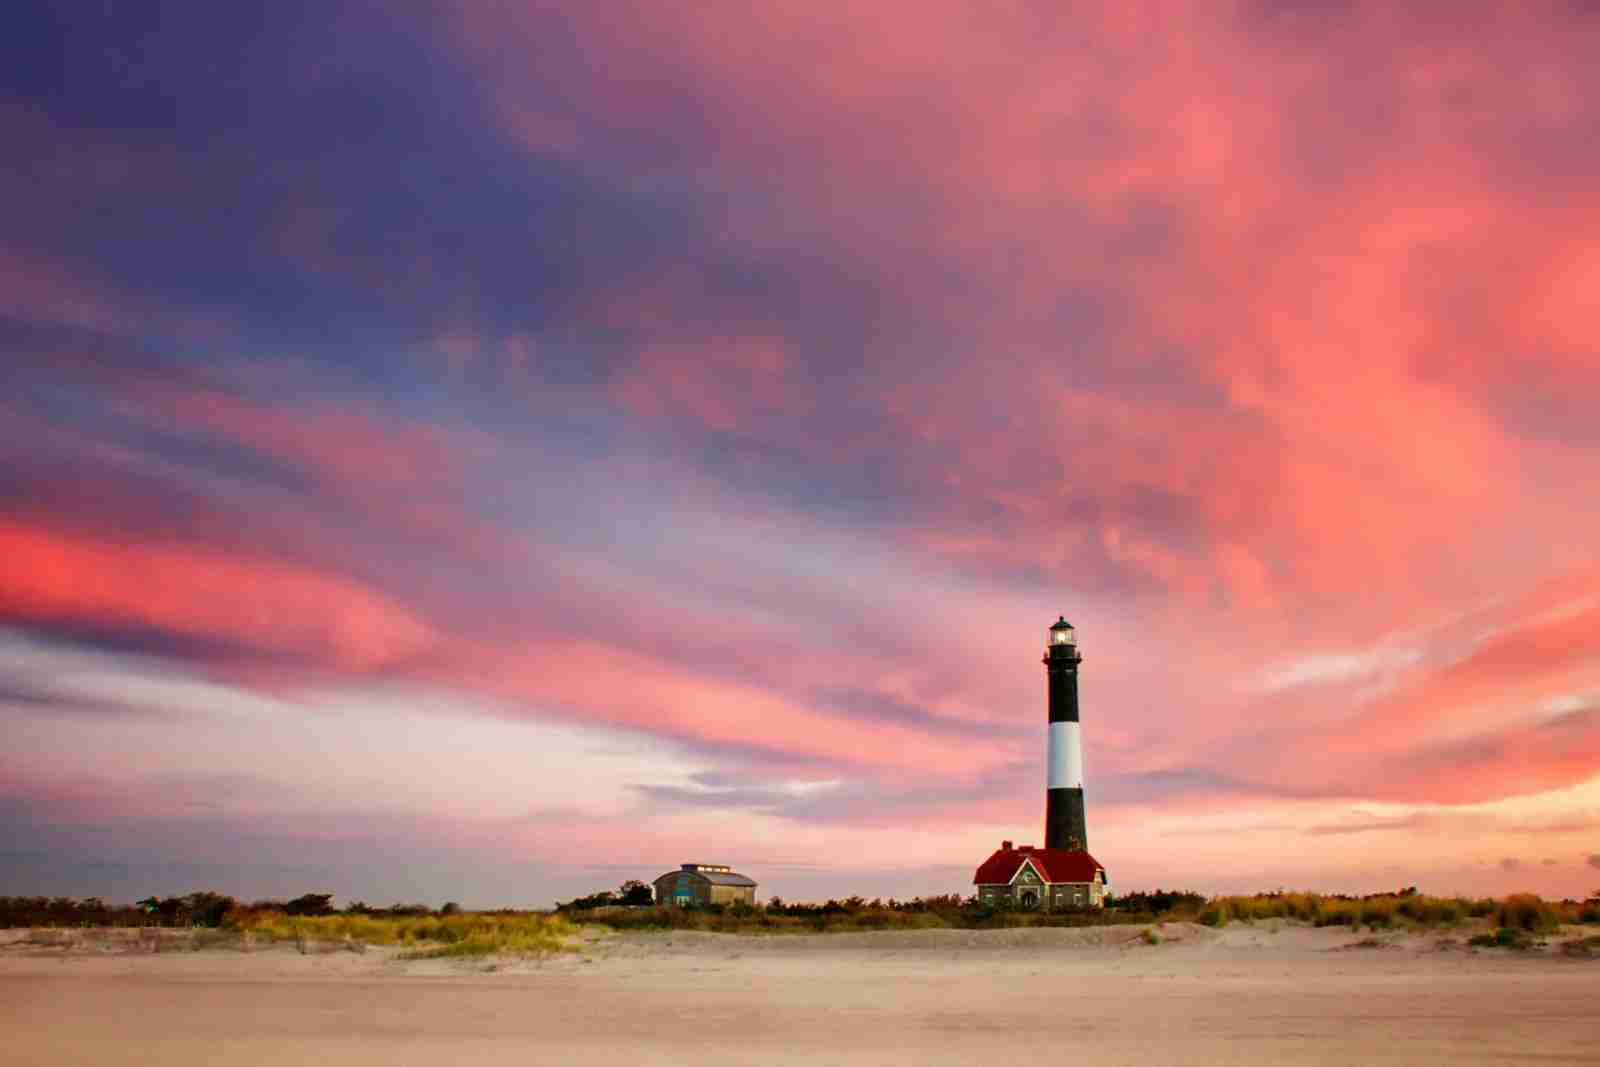 The Fire Island Lighthouse. (Photo by Vicki Jauron Babylon and Beyond Photography/Getty Images)